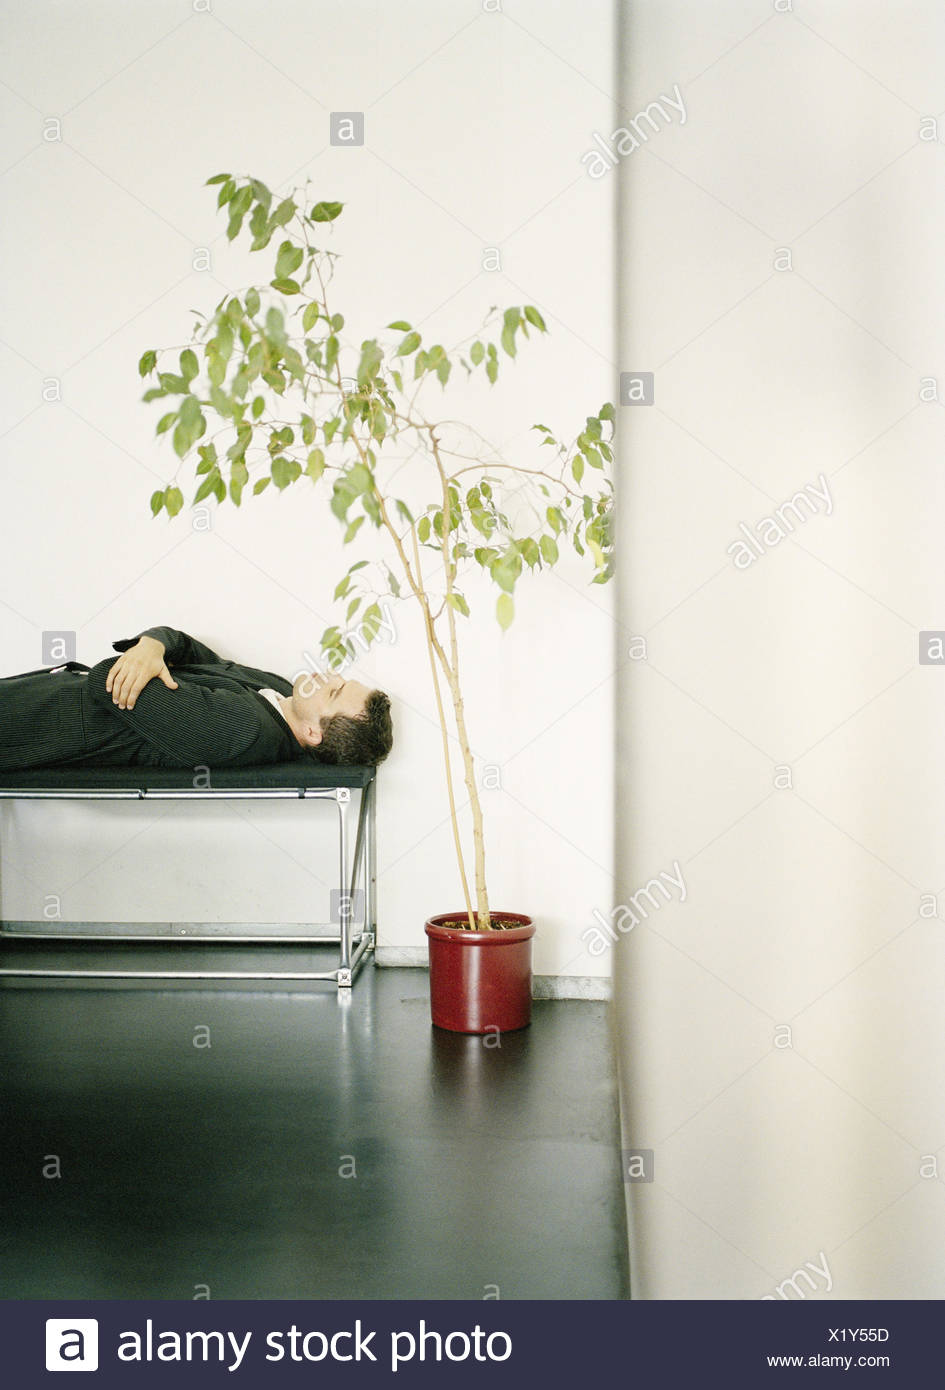 Waiting range, manager, lie, wait, sleep, wait for man, for suit, elegantly, waiting zone, waiting period, patience, patiently, delay, last, punctuality, unpunctuality, recreation, rest, take it easy, enjoy, rest, oversleep, plant, indoor plant - Stock Image